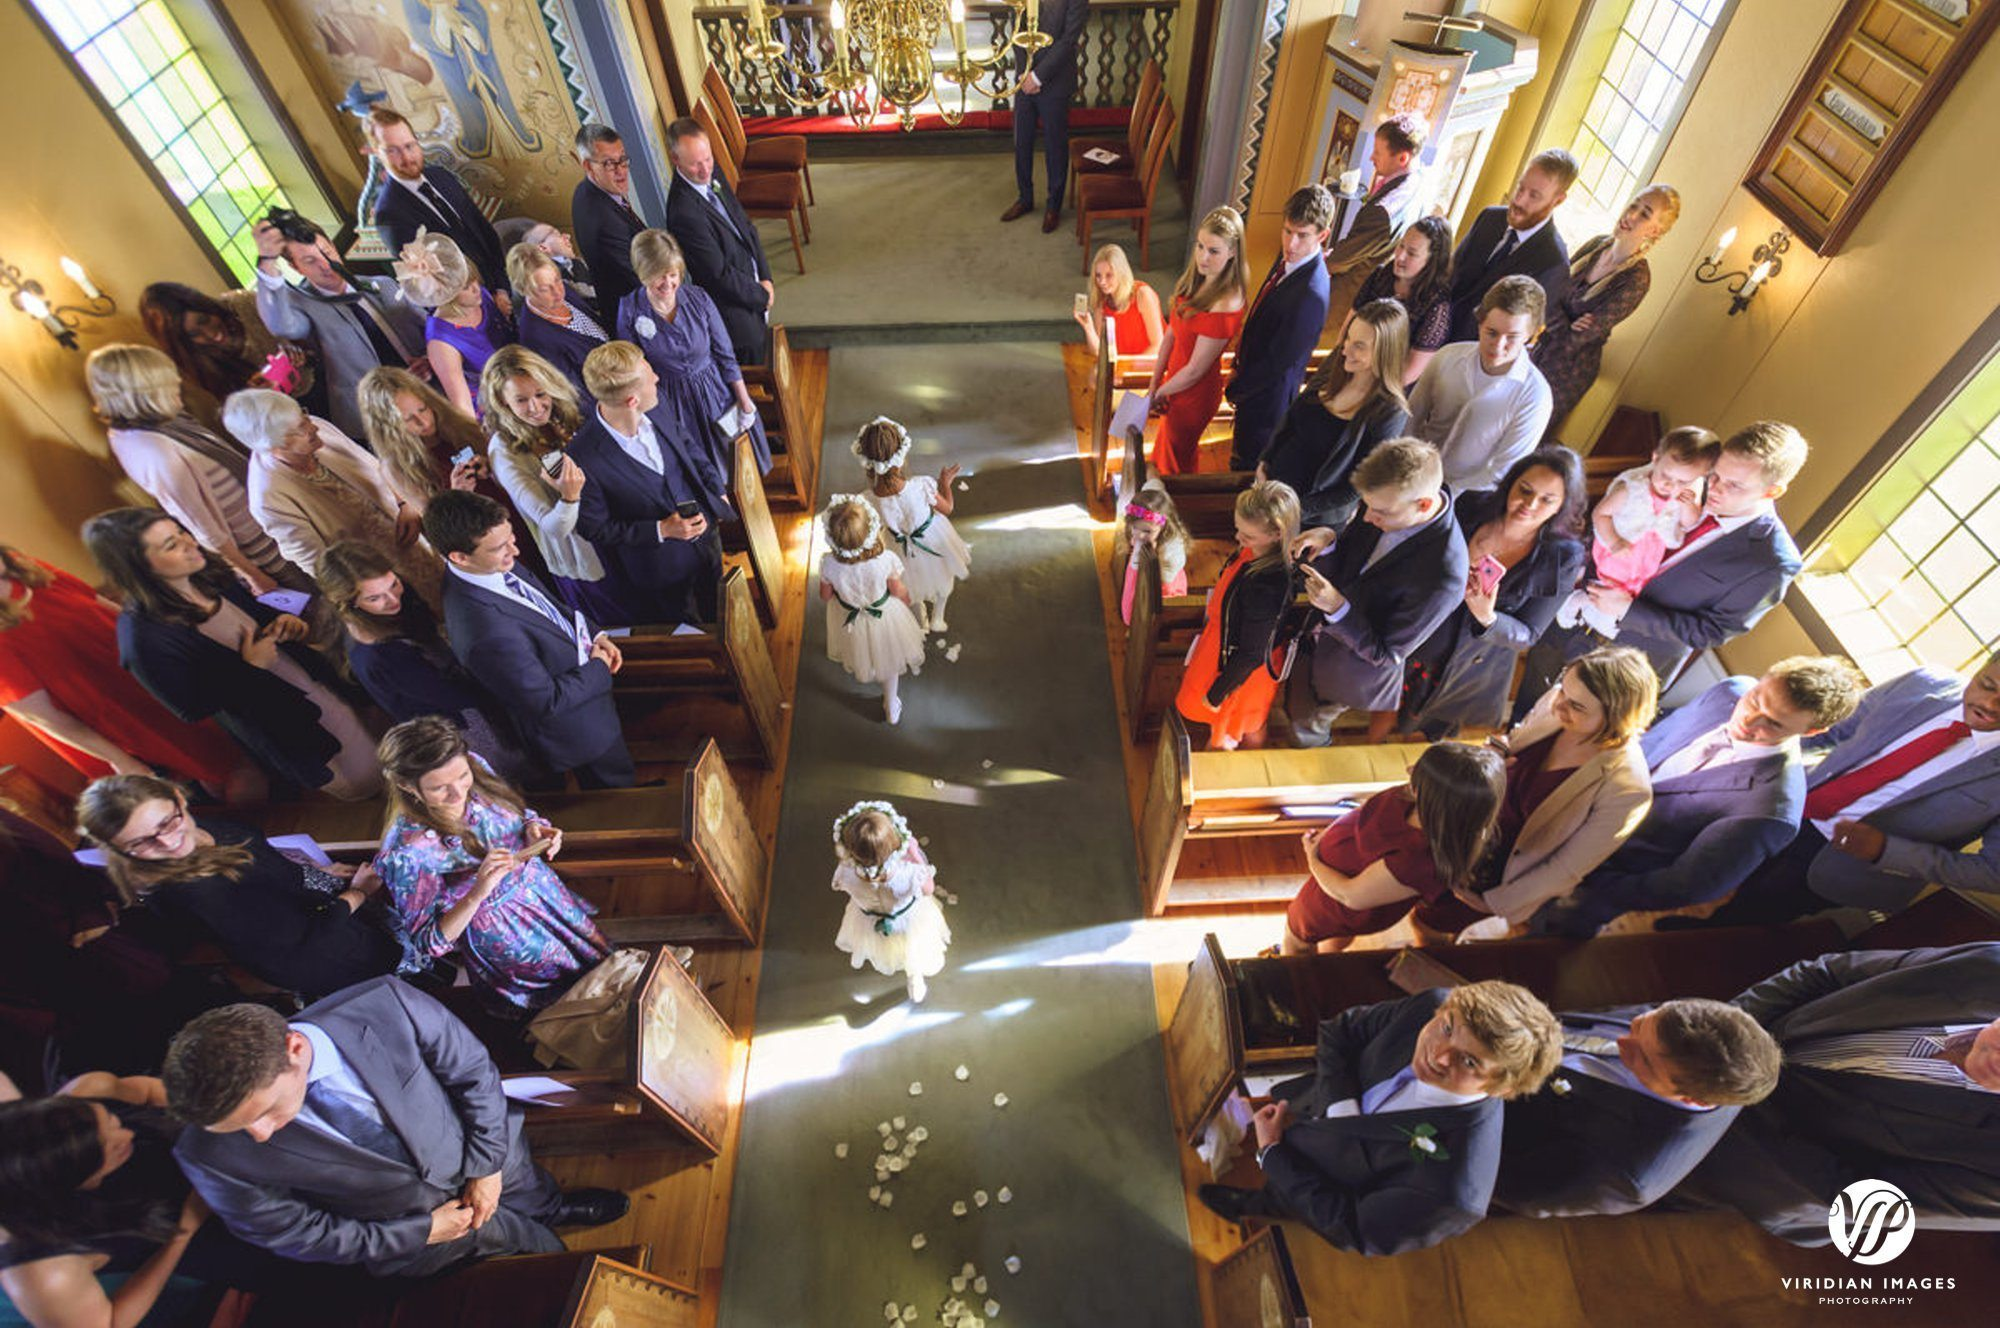 Wedding processional in Oddakirkja church in Iceland